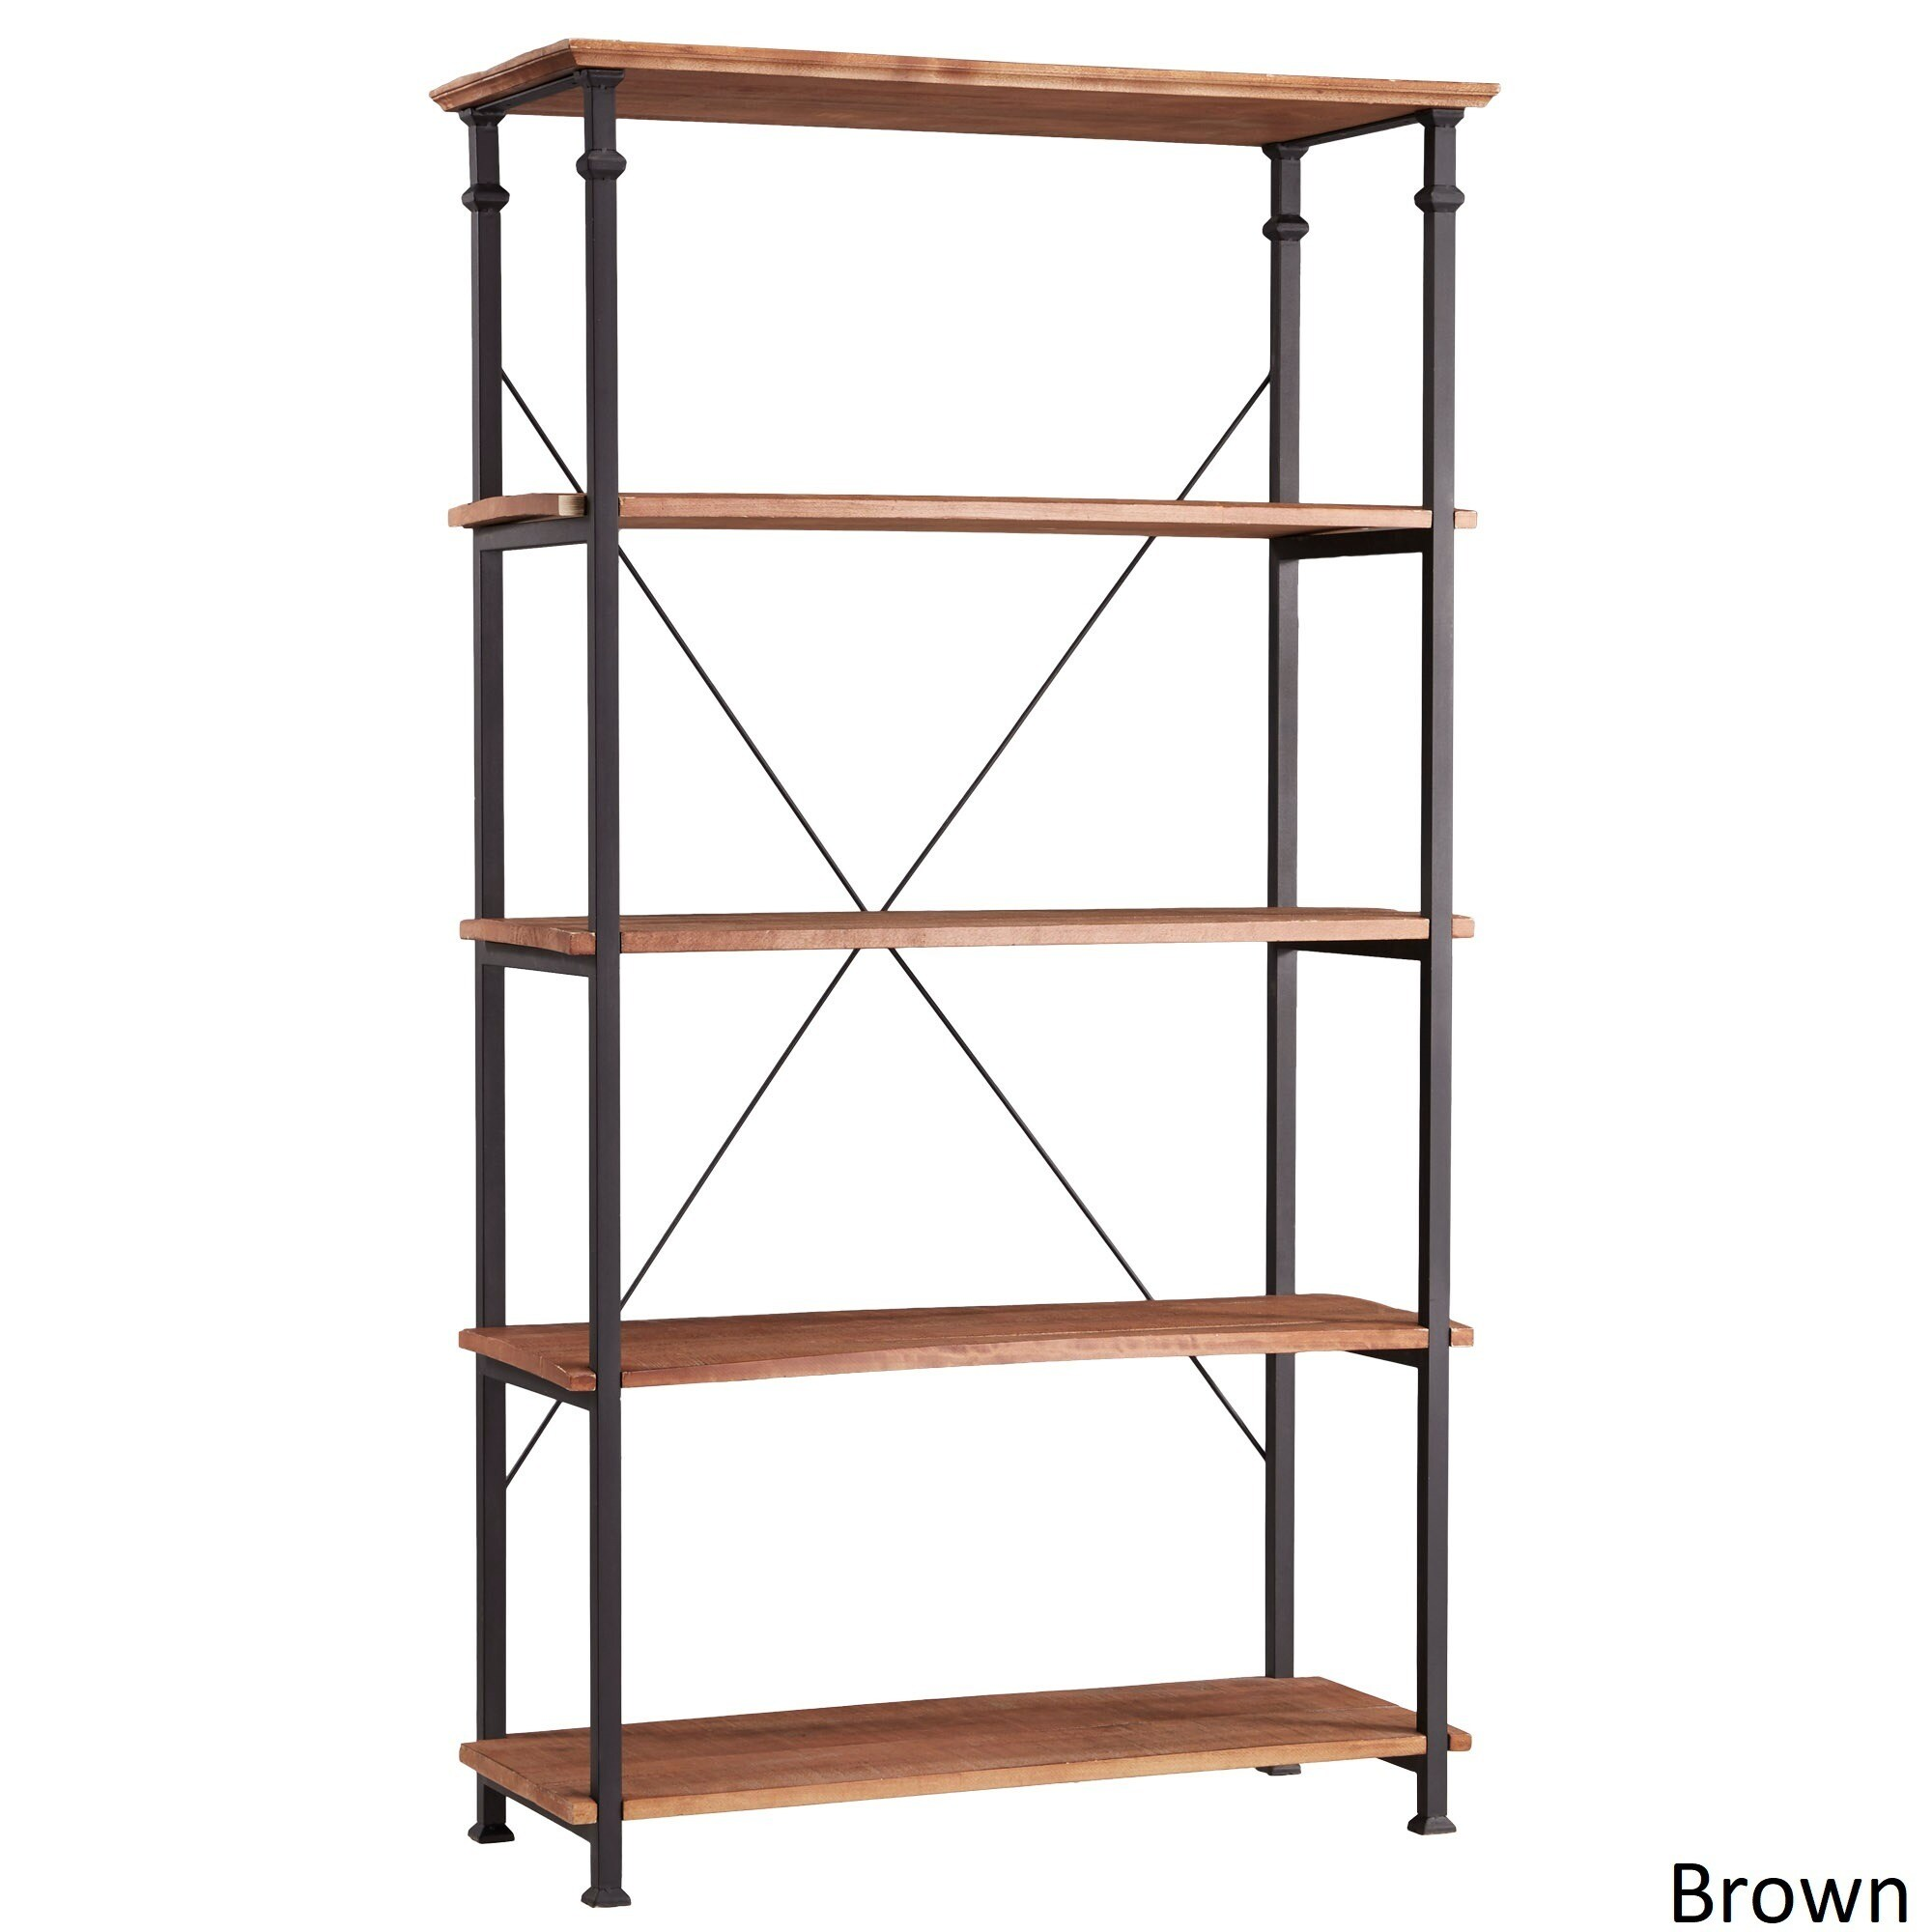 Shop Myra Vintage Industrial Modern Rustic 40 Inch Bookcase By INSPIRE Q Classic